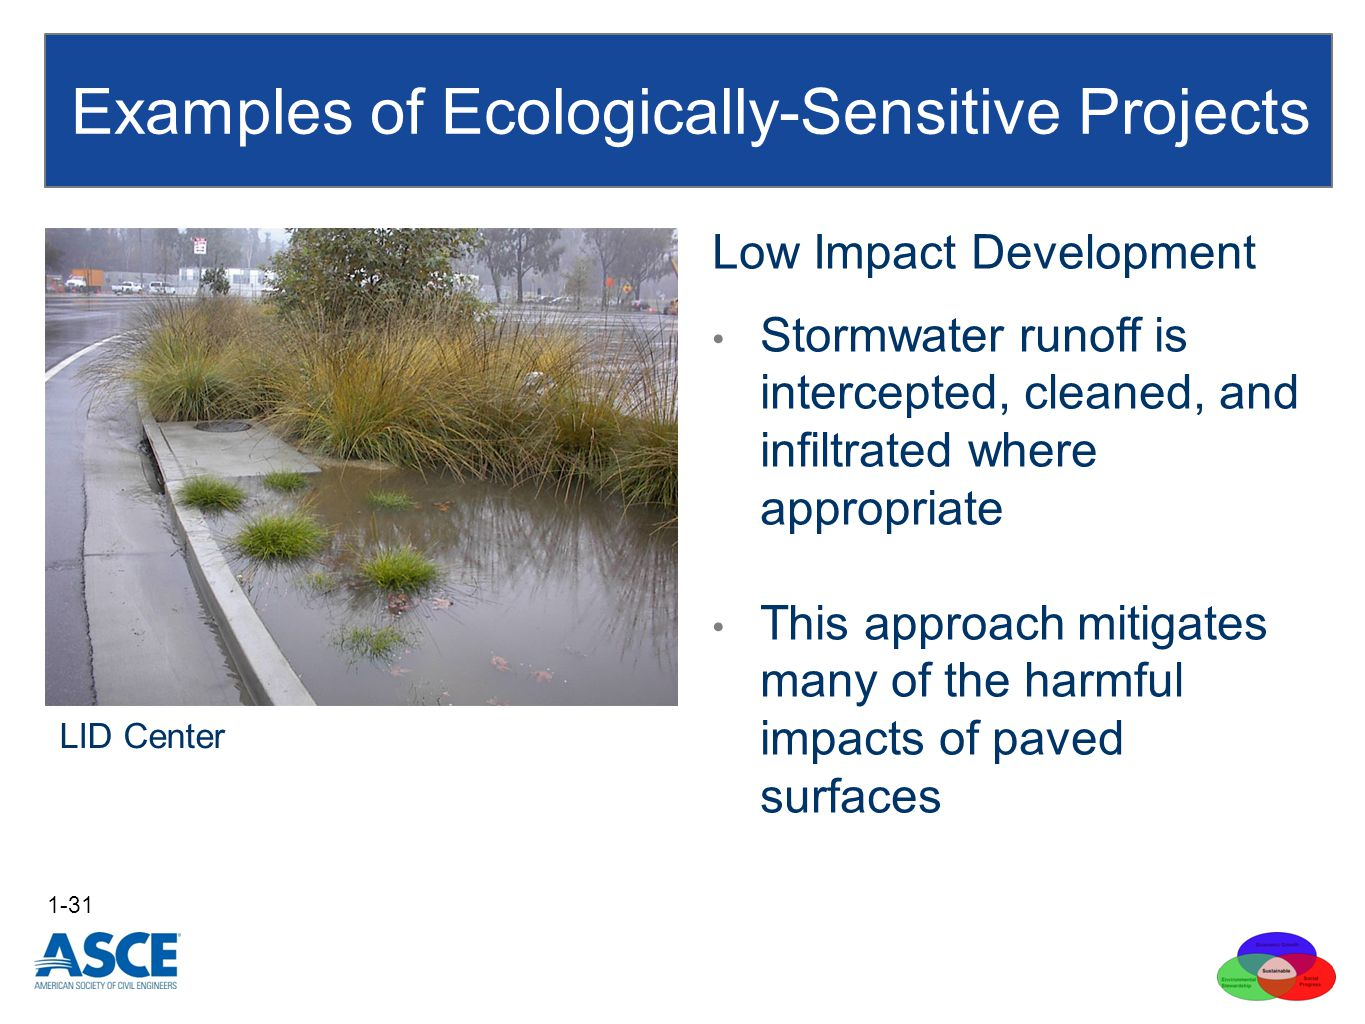 Examples of Ecologically-Sensitive Projects 1-31 LID Center Low Impact Development Stormwater runoff is intercepted, cleaned, and infiltrated where appropriate This approach mitigates many of the harmful impacts of paved surfaces